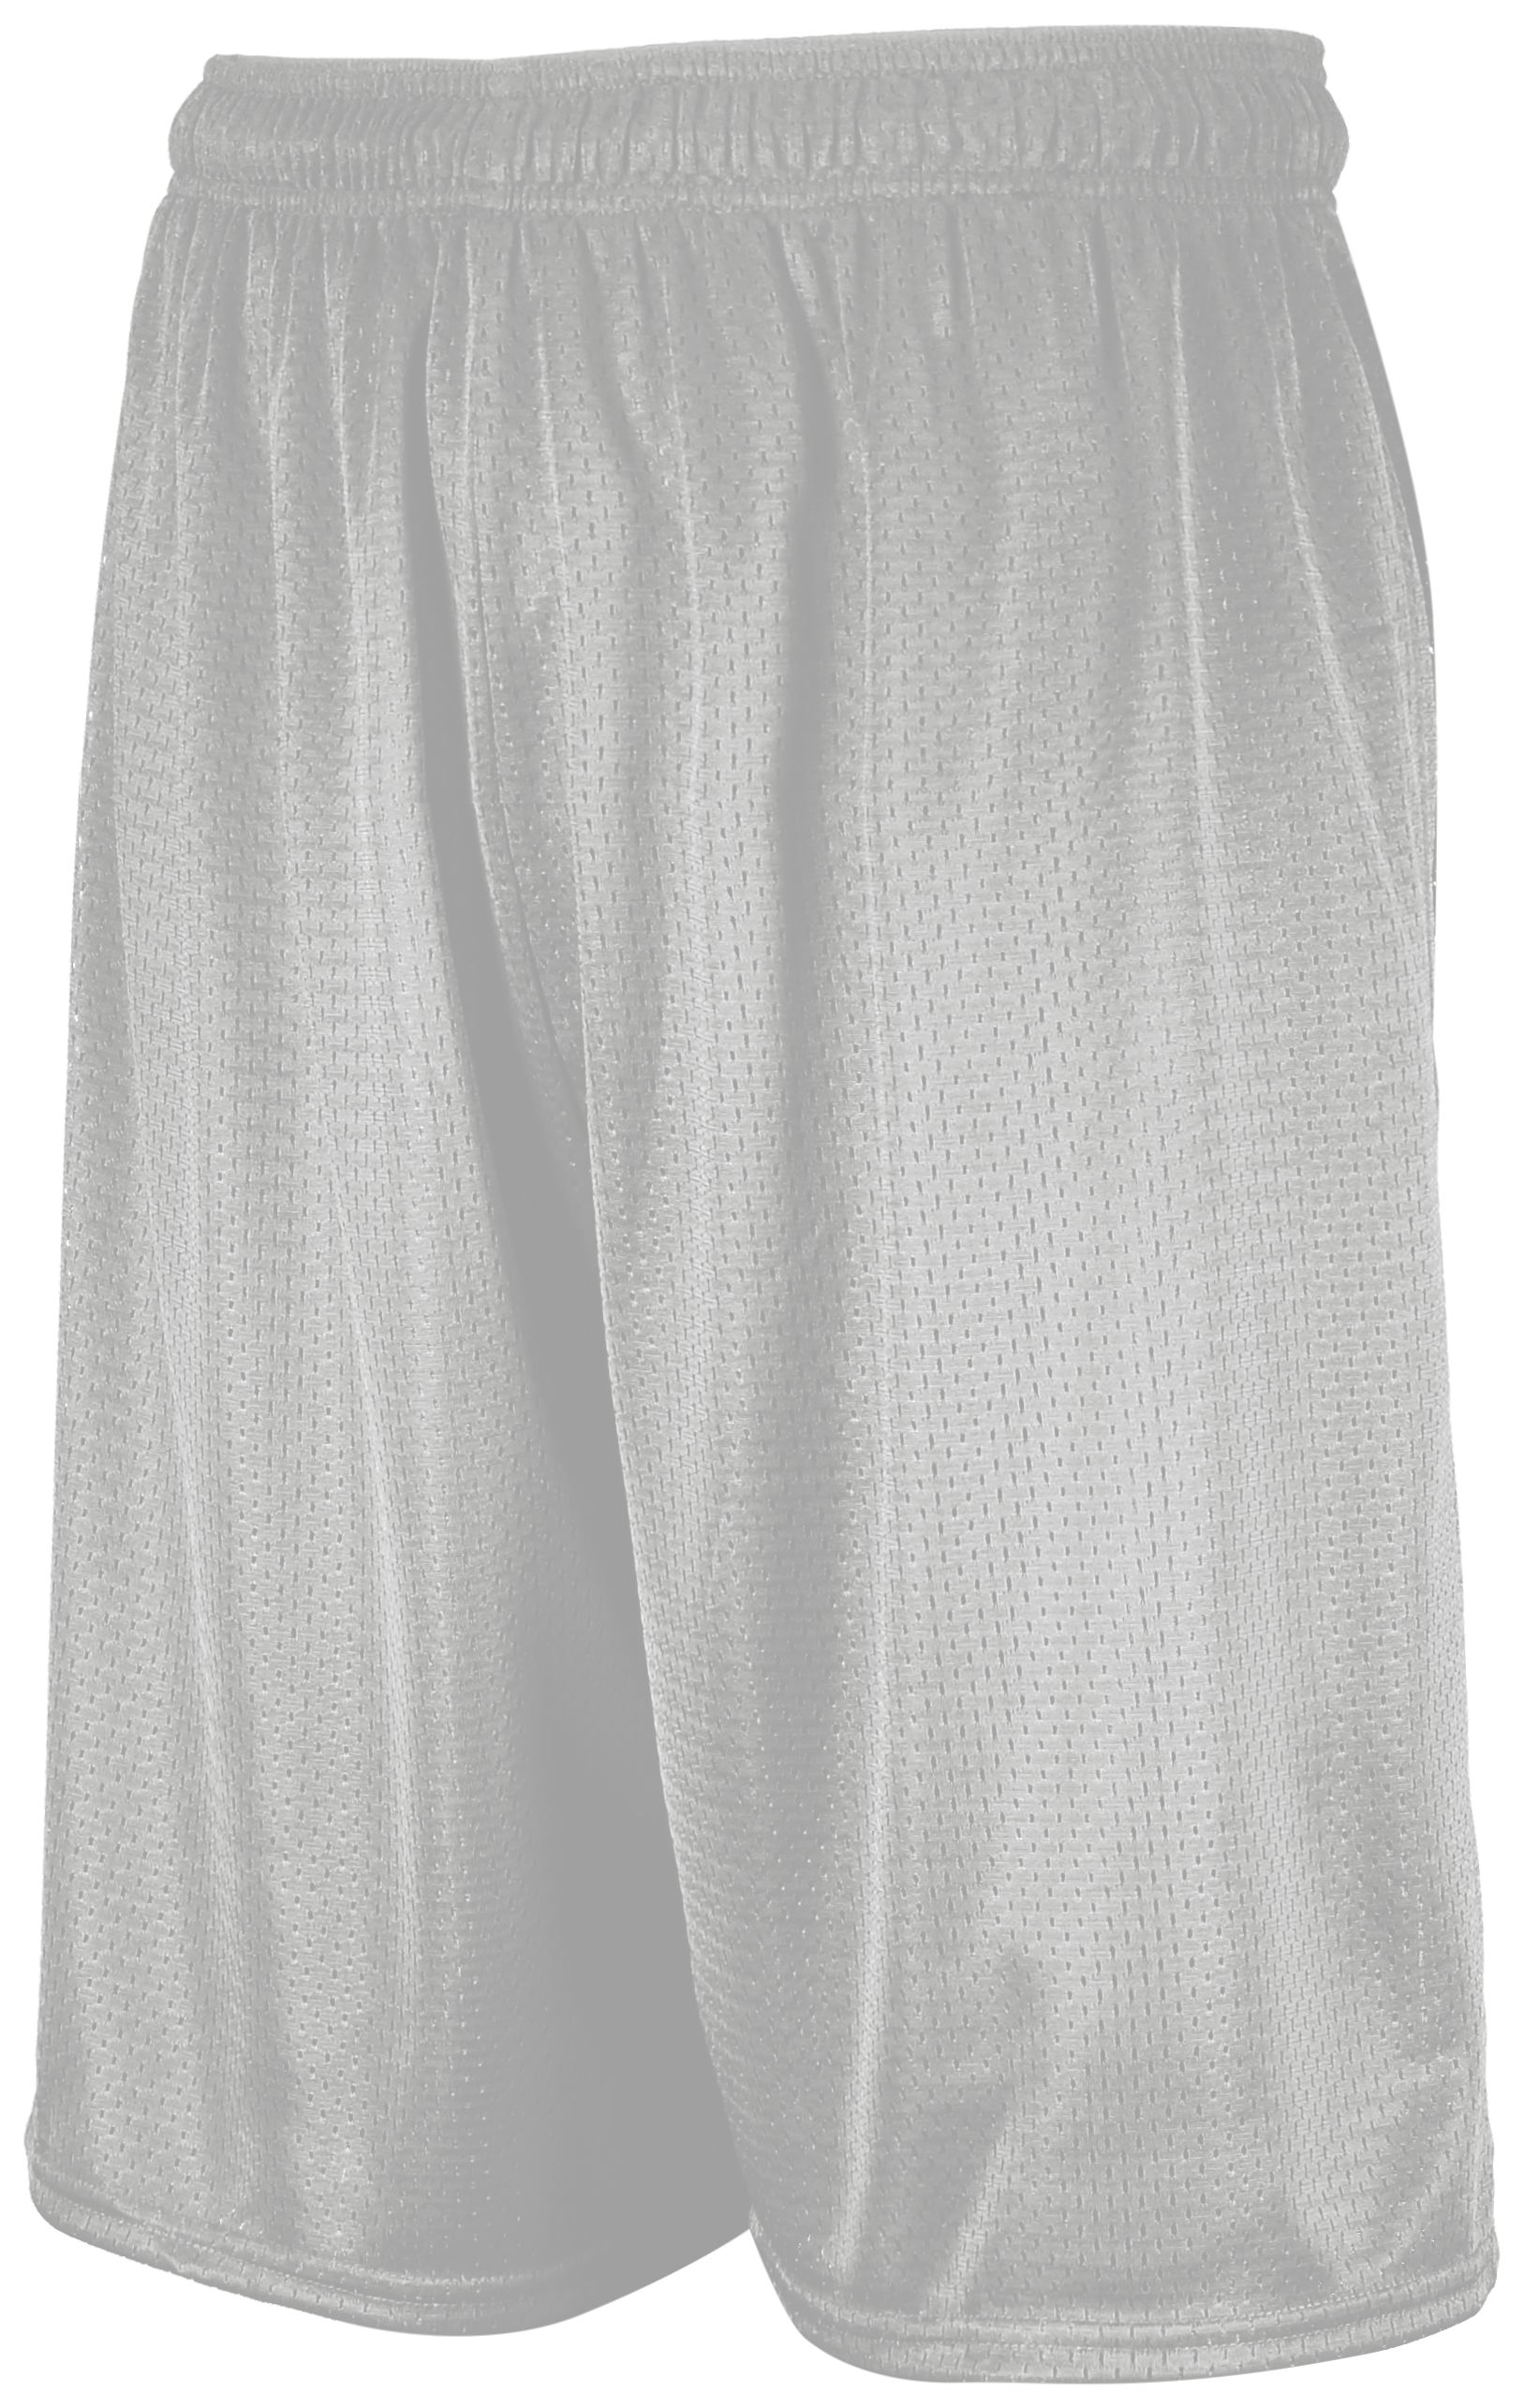 Dri-Power Mesh Shorts - Gridiron Silver